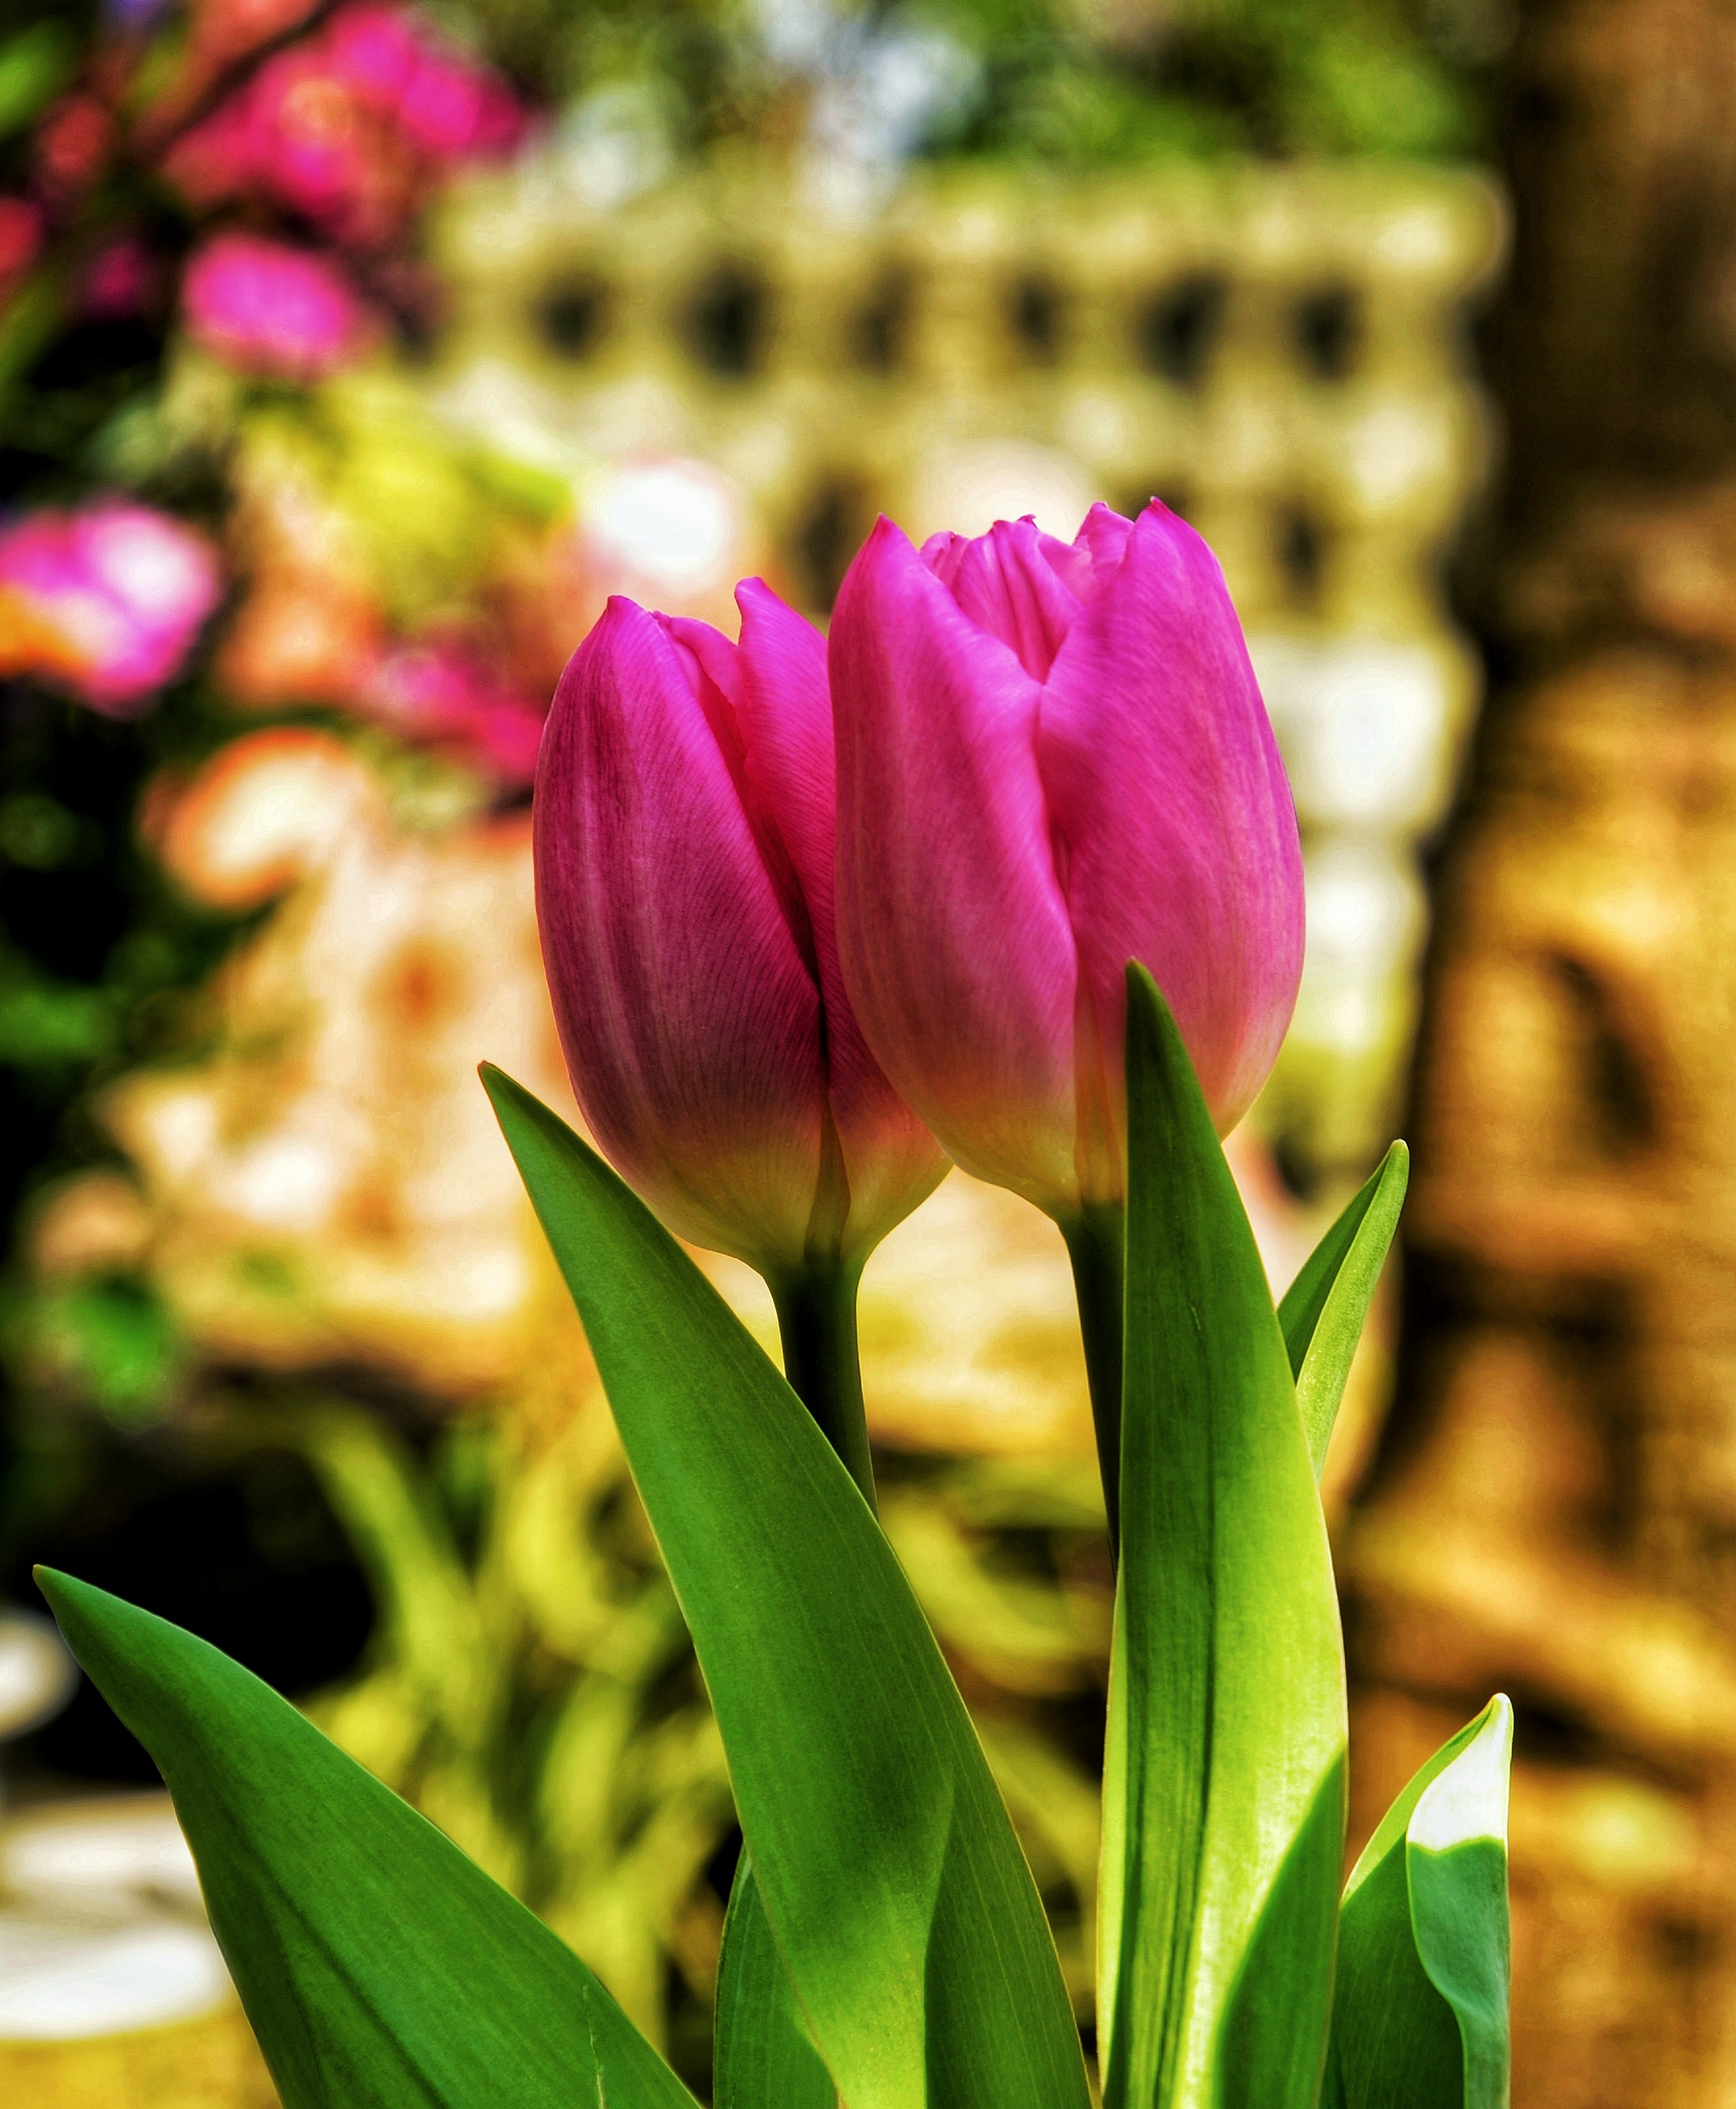 Free Photo Two Pink Tulip Flowers Growth Nature Petals Free